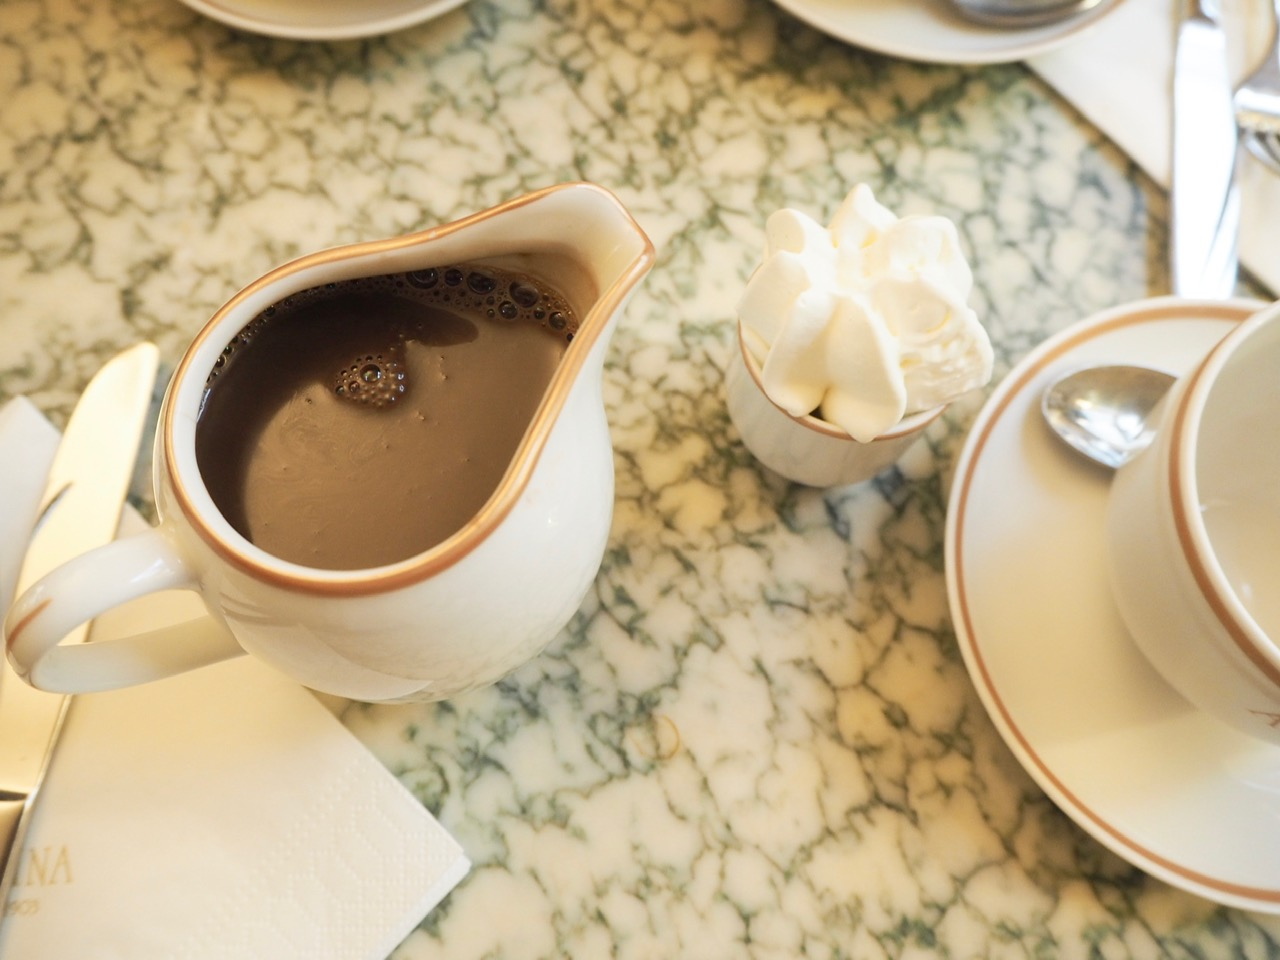 Angelinas Hot Chocolate, three days in Paris